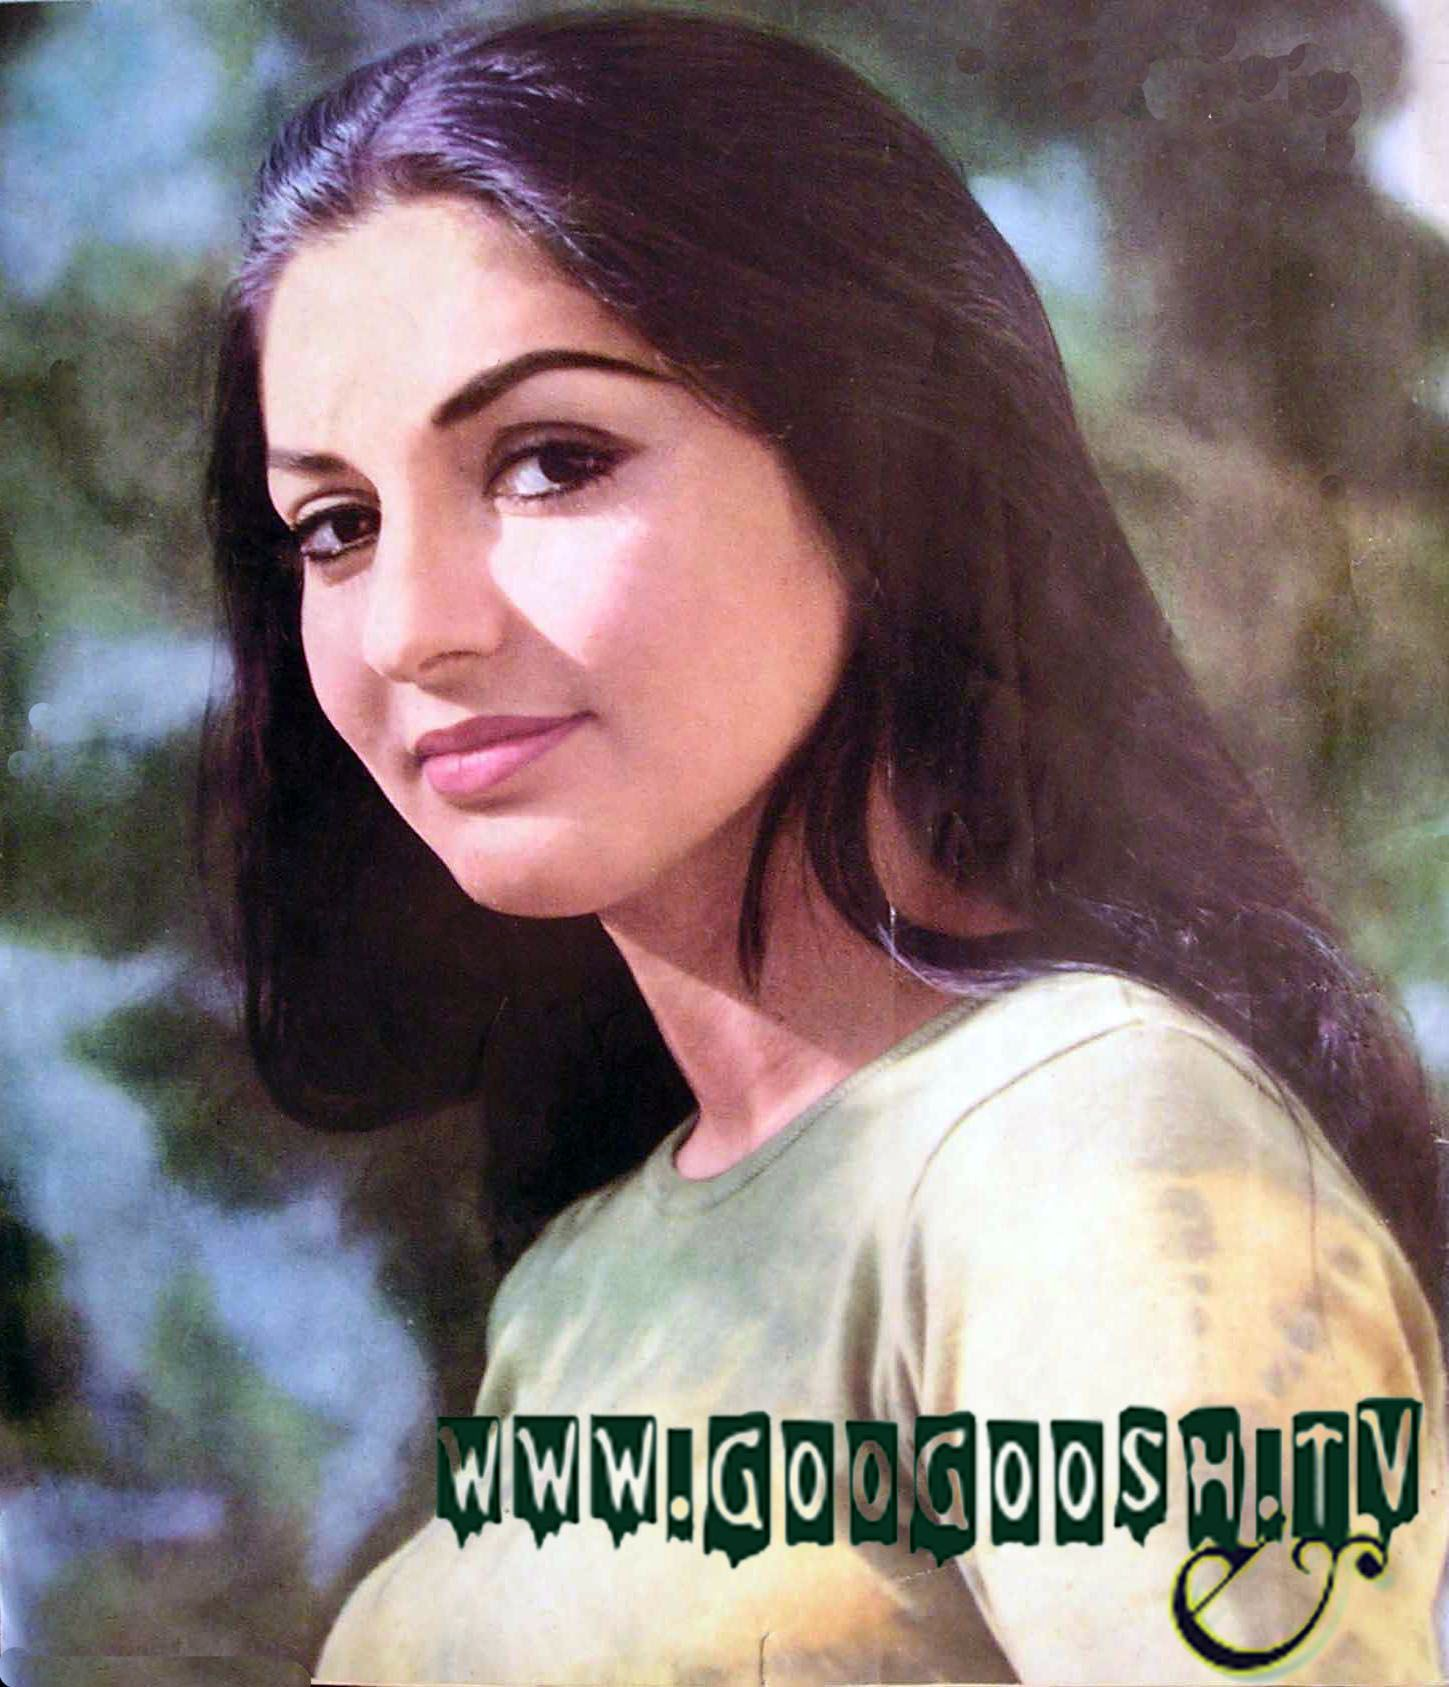 Googoosh Iranian Singer Old Pic Of Her When She Was